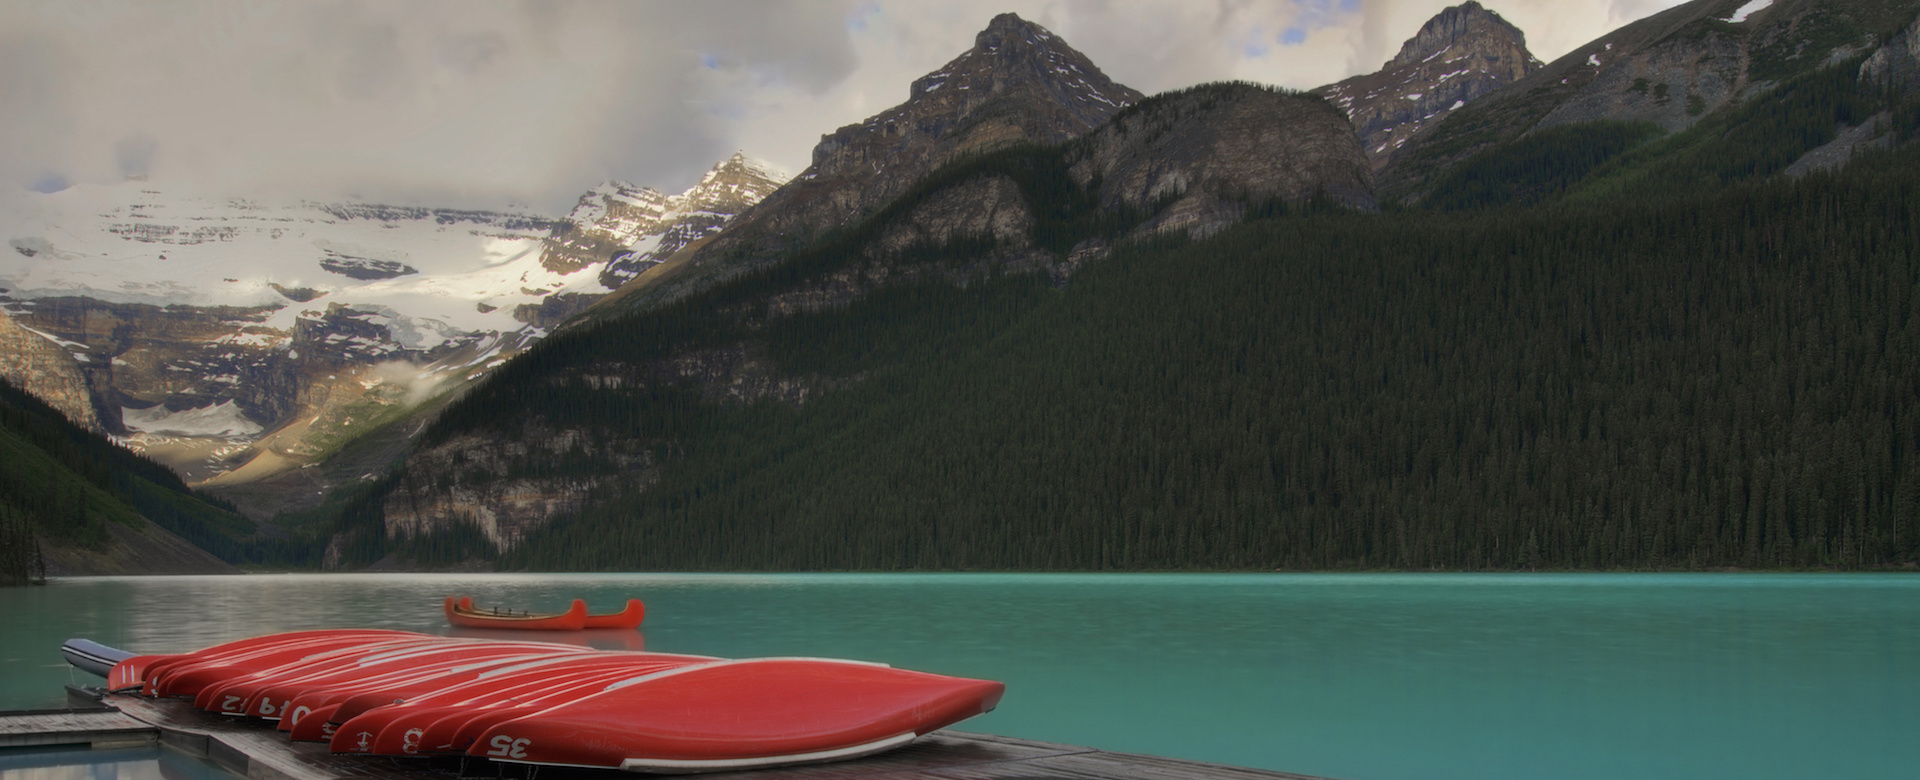 Red Canoes on Lake representing simplicity of Hacknowledge's cyber security solutions